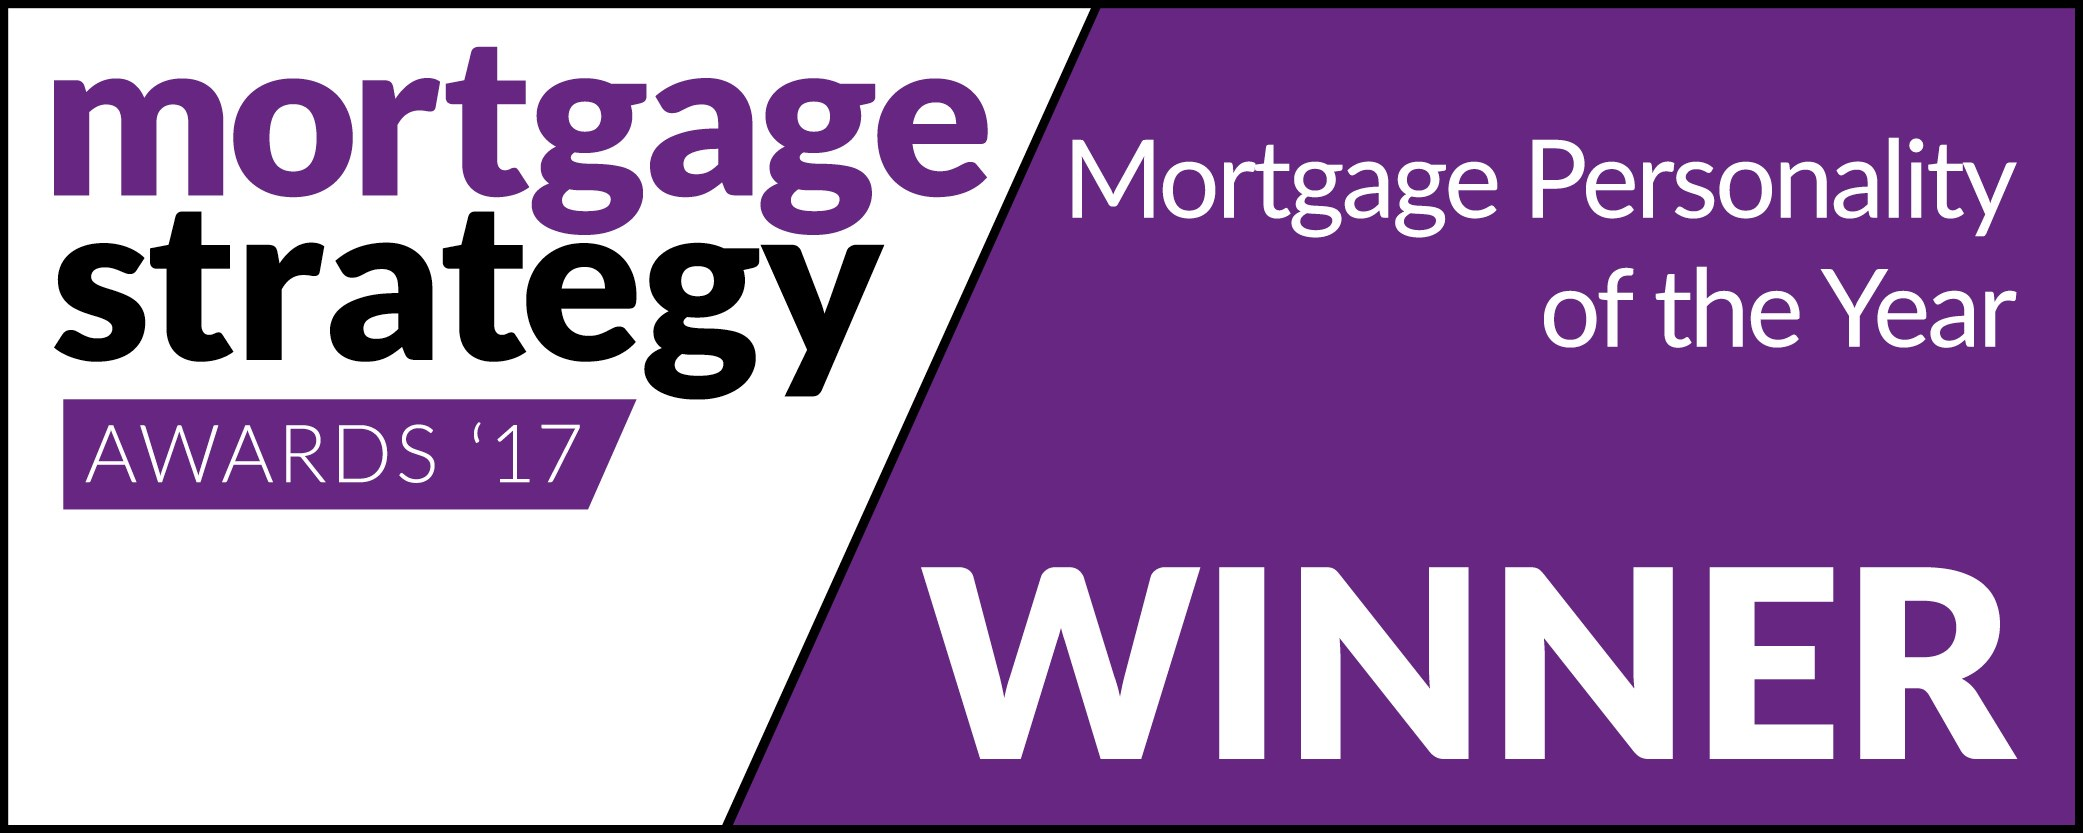 Mortgage Personality of the Year Winner logo.jpg